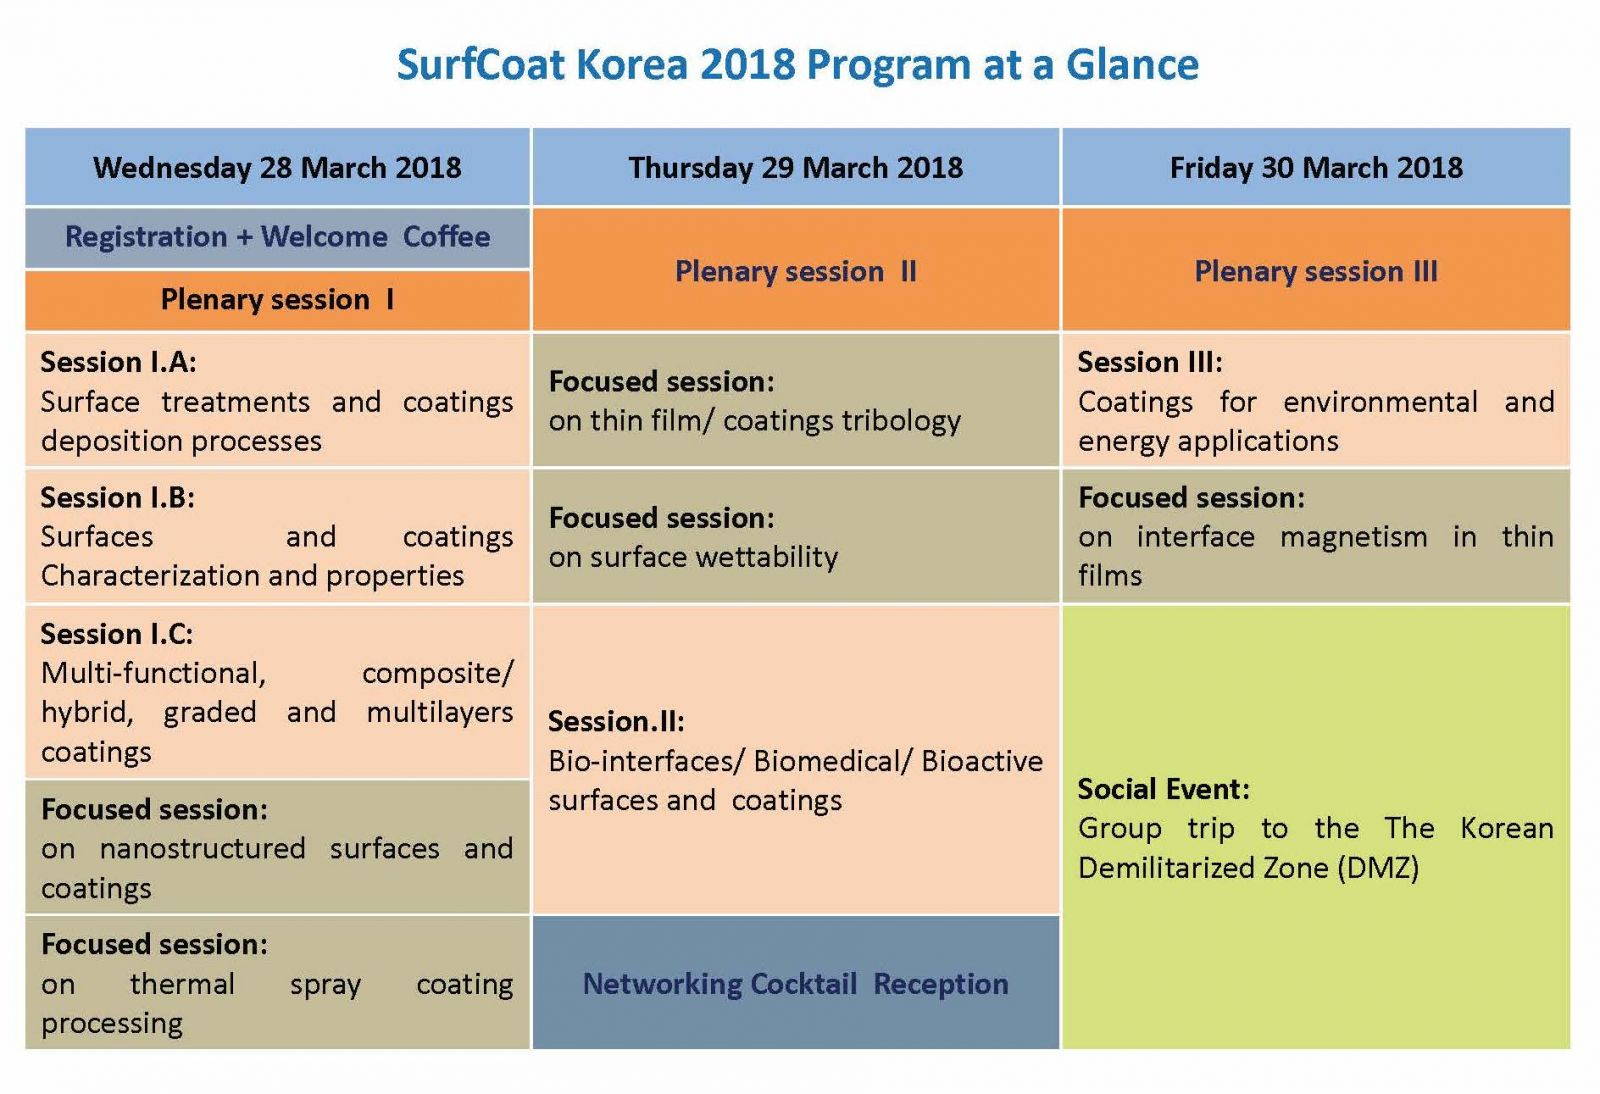 SurfCoat Korea 2018 International Conference